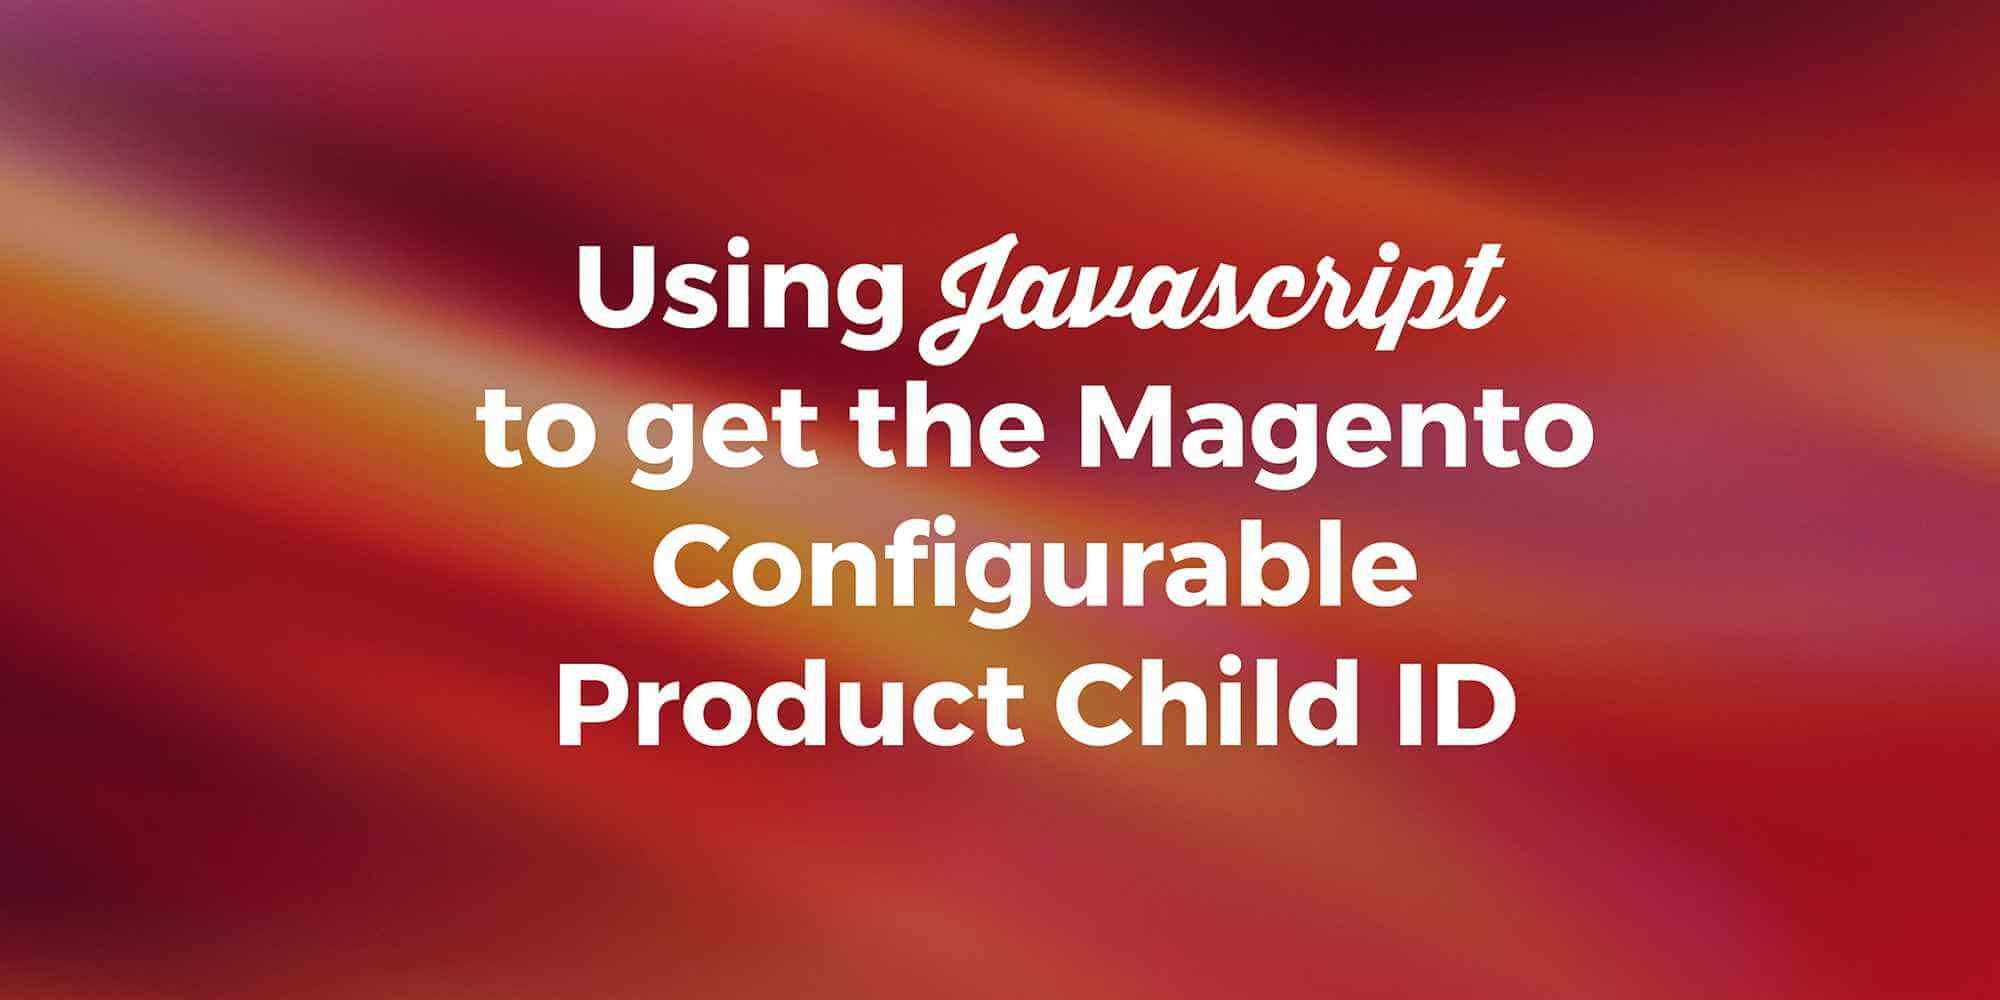 Using Javascript to Get a Magento Configurable Product Child ID